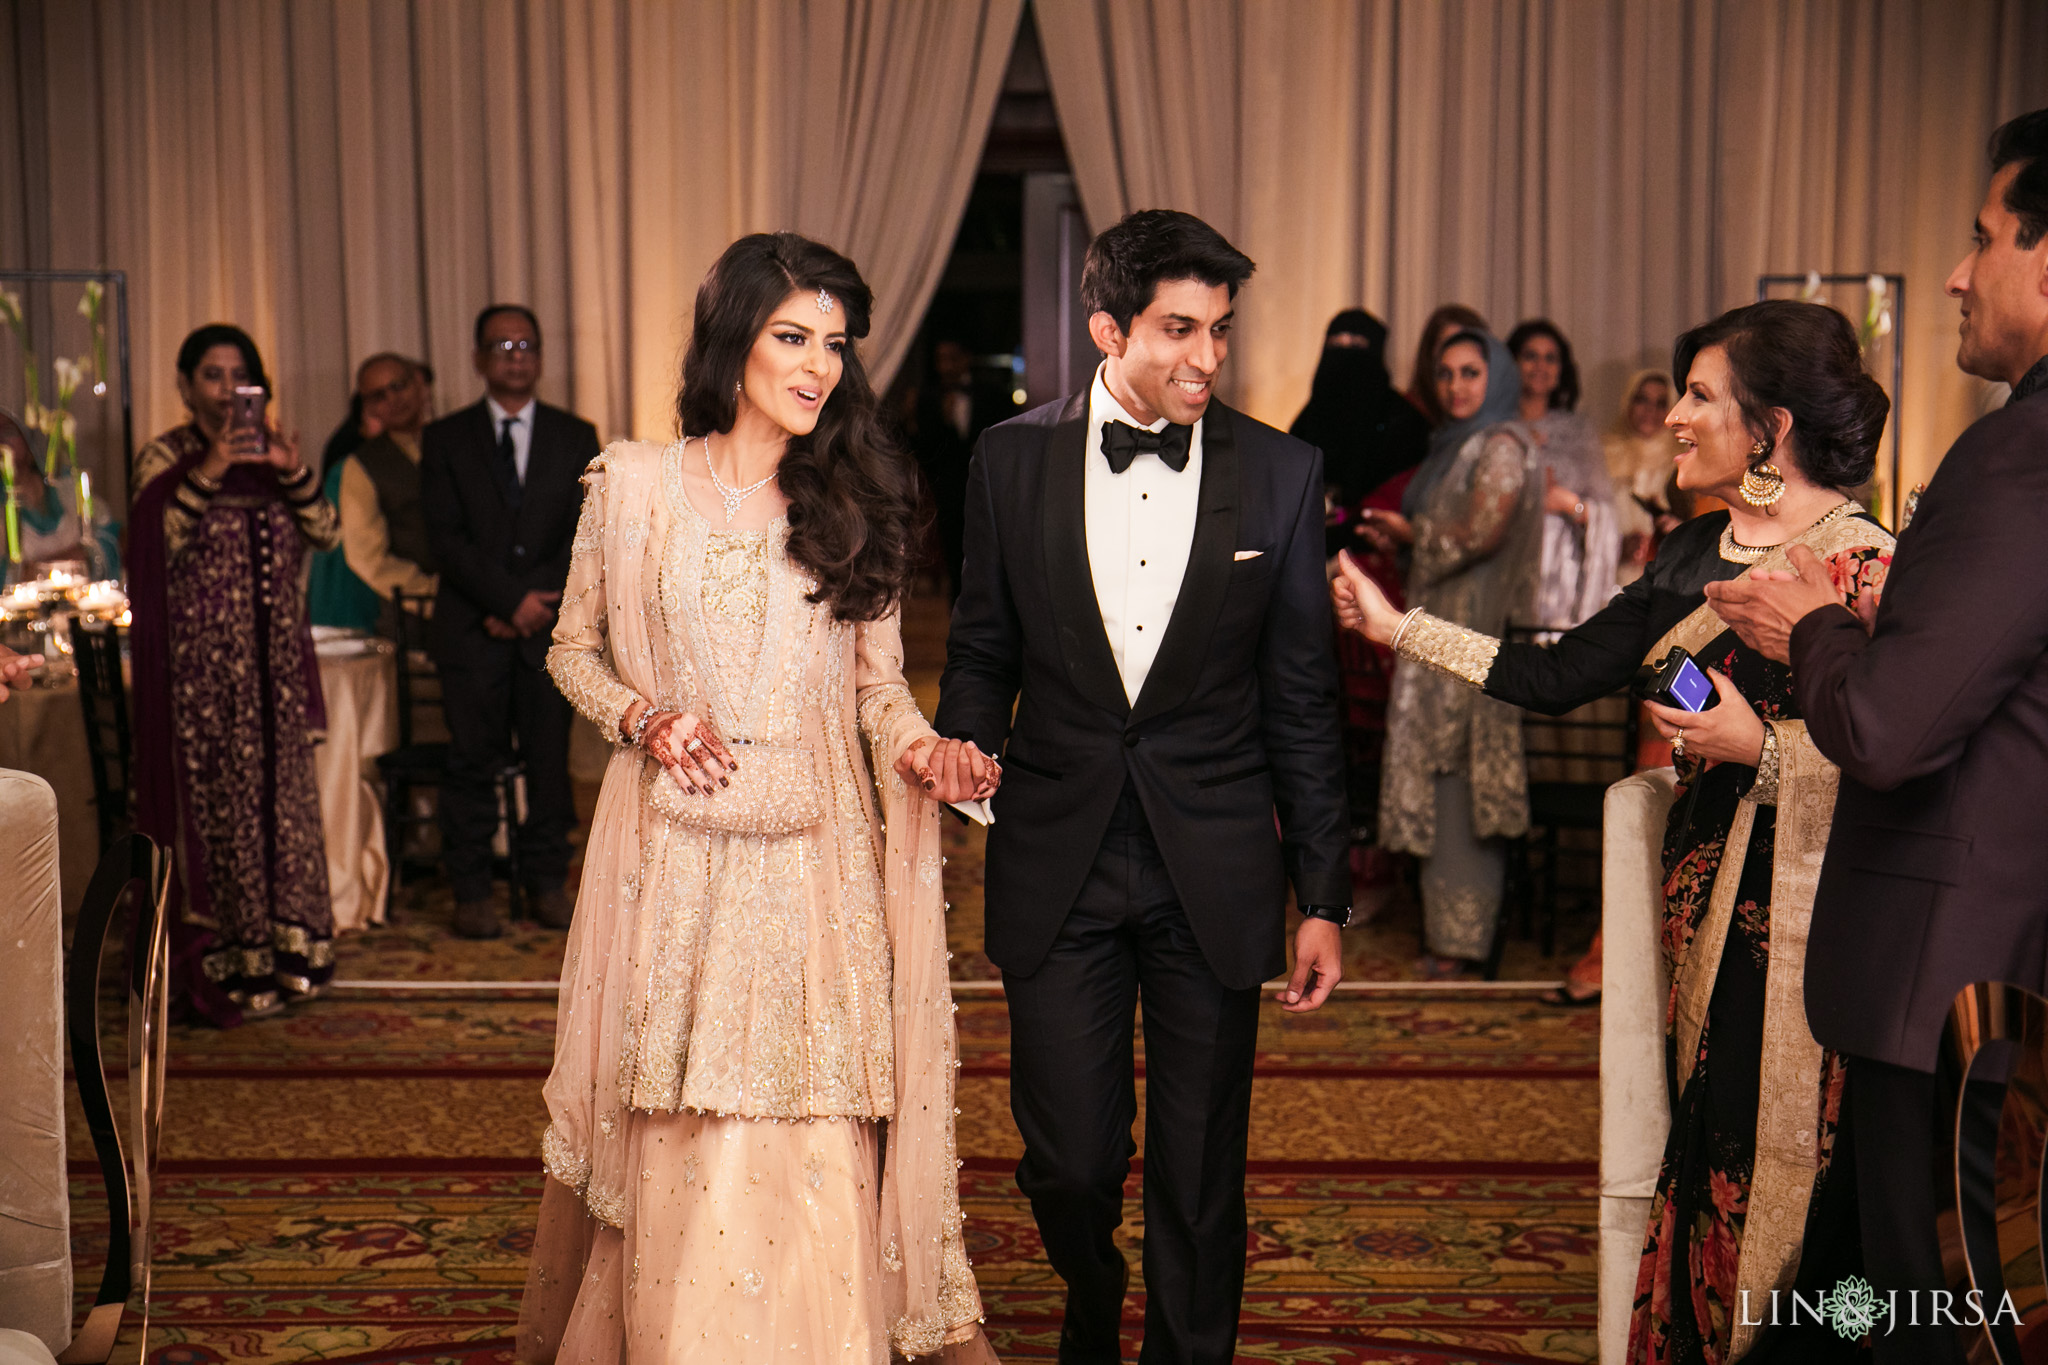 016 four seasons westlake village muslim wedding reception photography